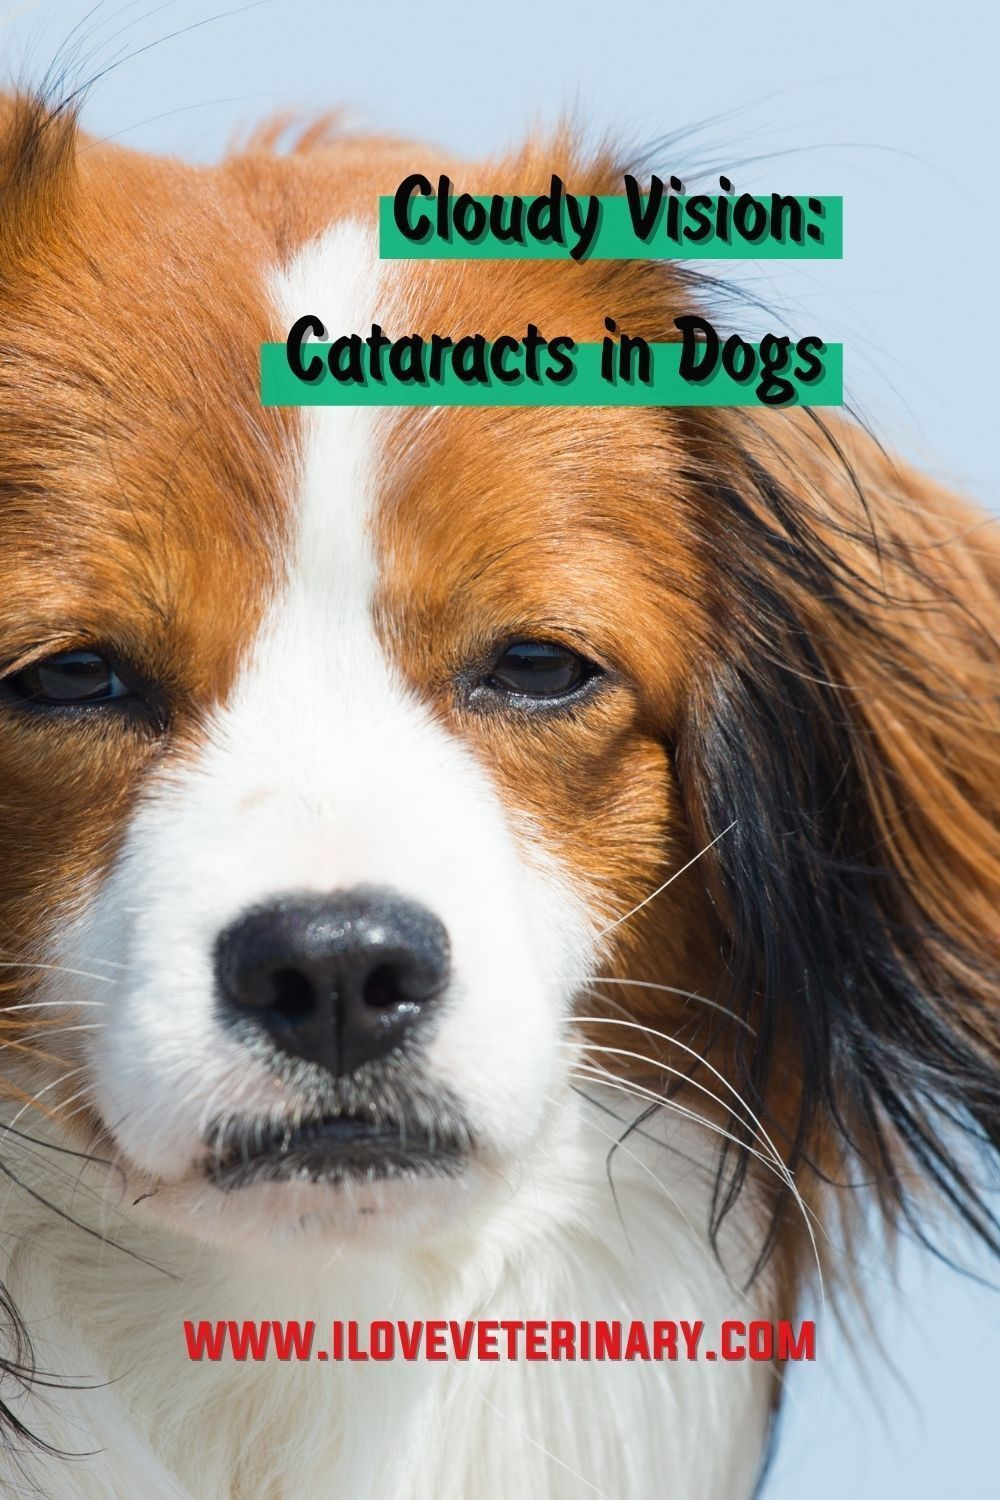 Cloudy Vision Cataracts In Dogs I Love Veterinary In 2020 Cataracts In Dogs Dogs Cataract